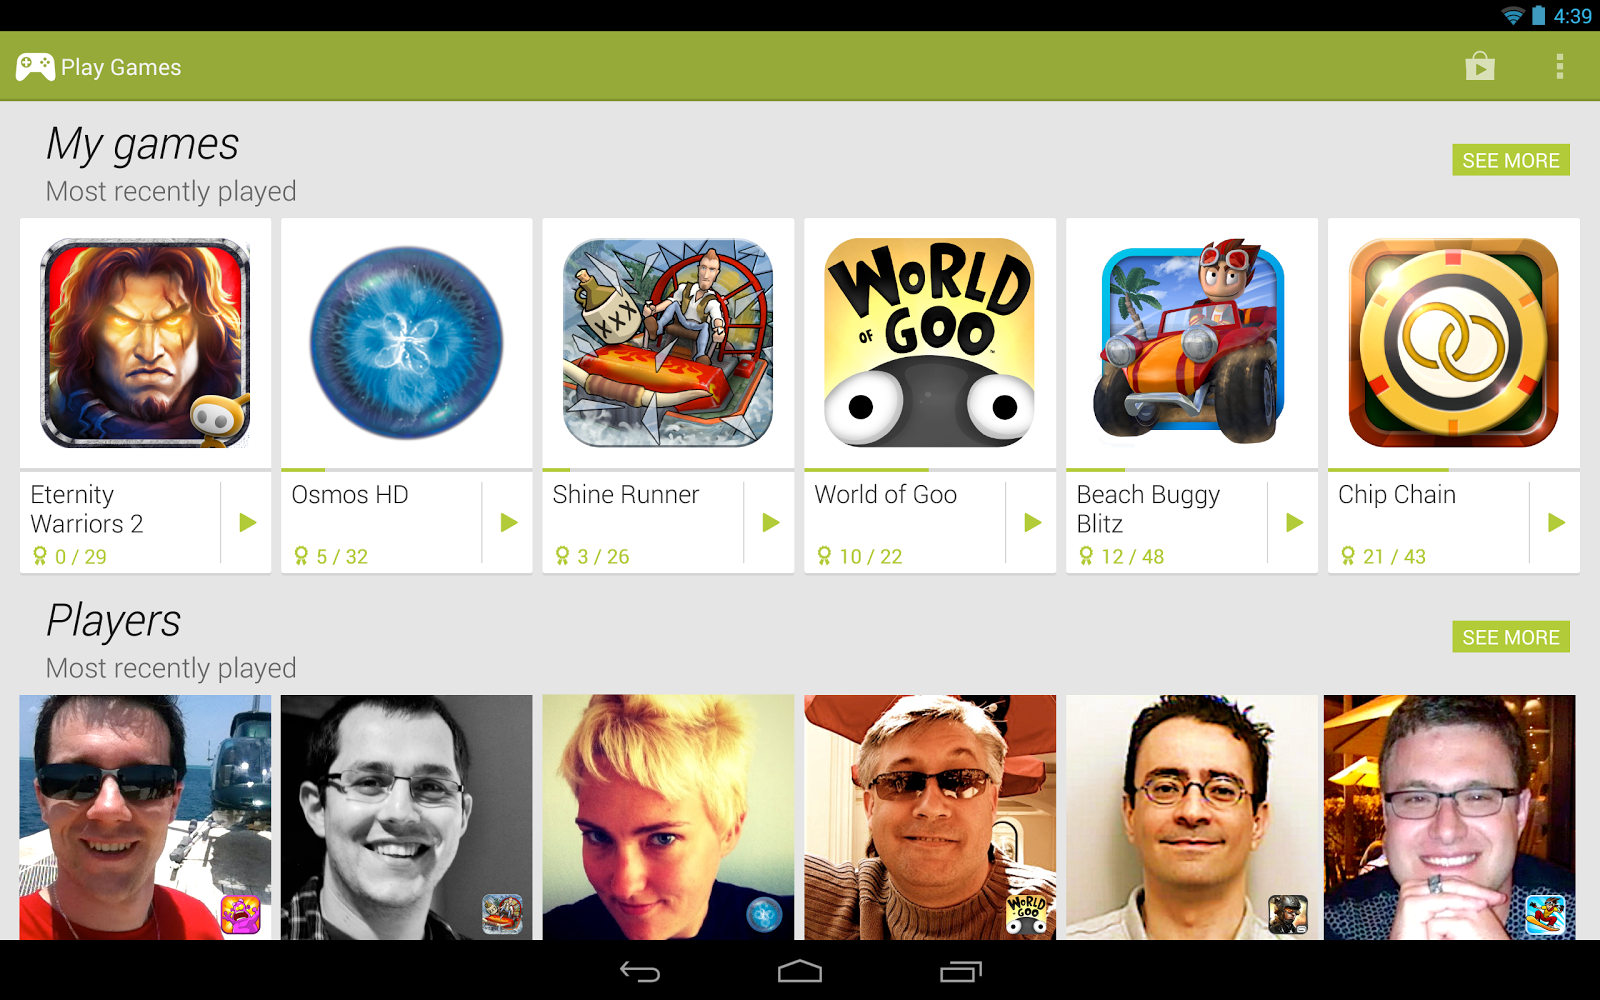 43 Best New Android Games From The Last 2 Weeks (7/12/13 - 7/26/13)